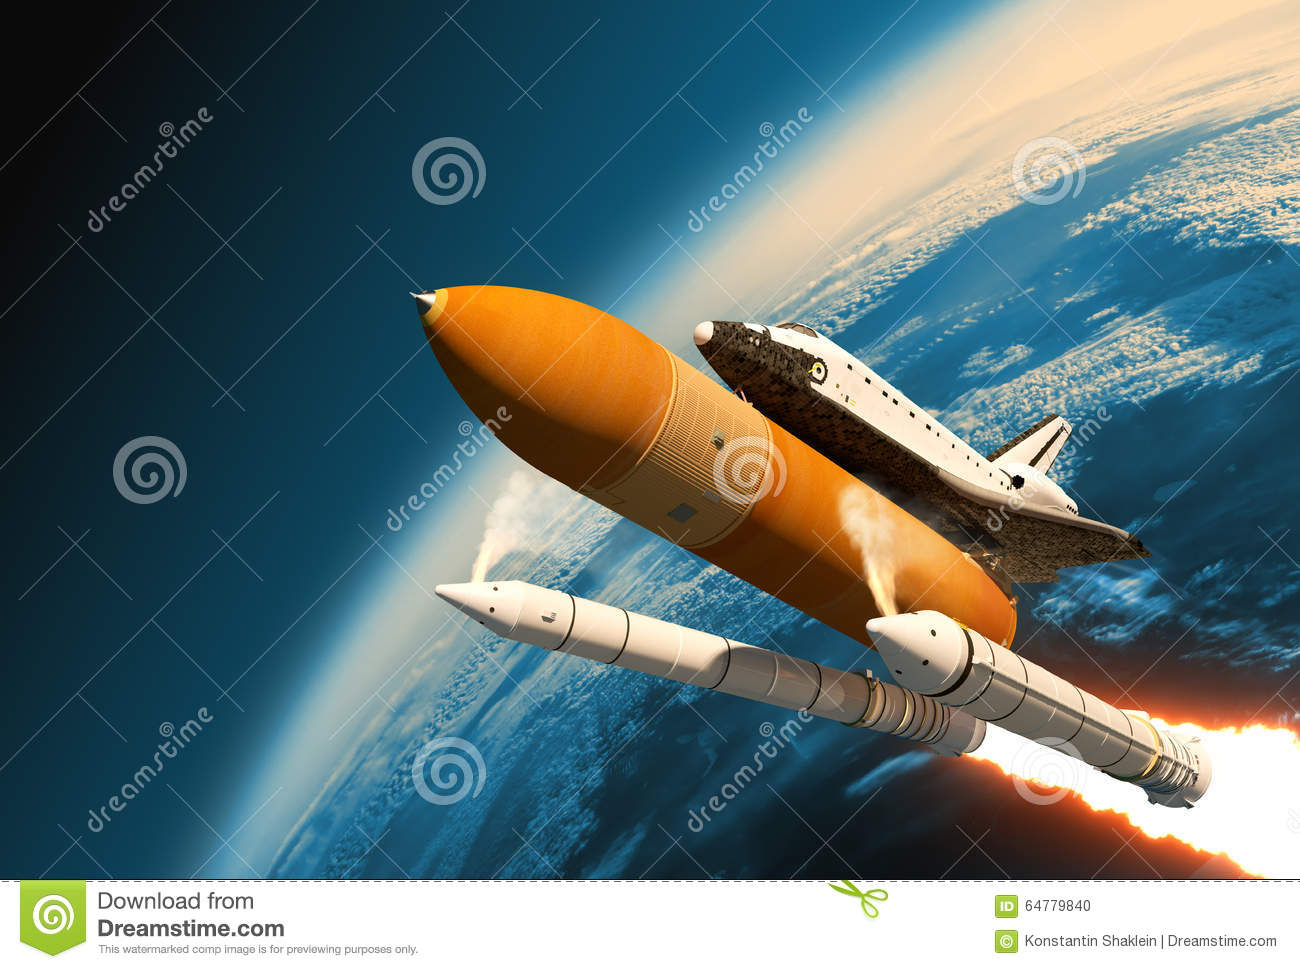 Space Shuttle Solid Rocket Boosters Separation In Stratosphere.